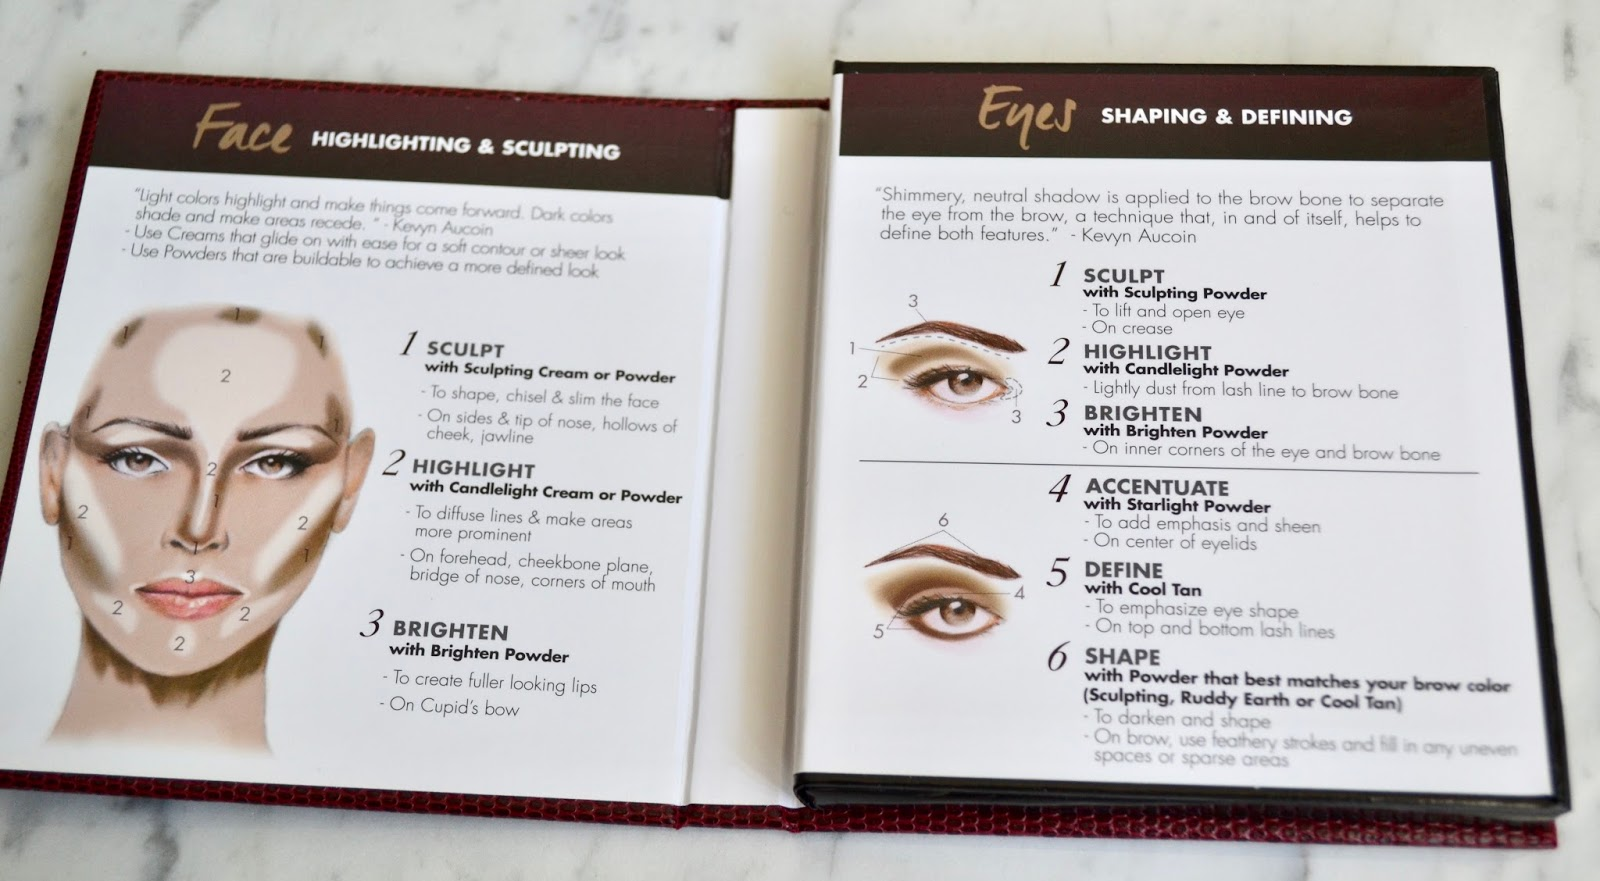 The Palette Has Everything You Need For Sculpting And Highlighting The  Face It Evenes With A Howto Guide To Show Where The Products Will  Work And Look